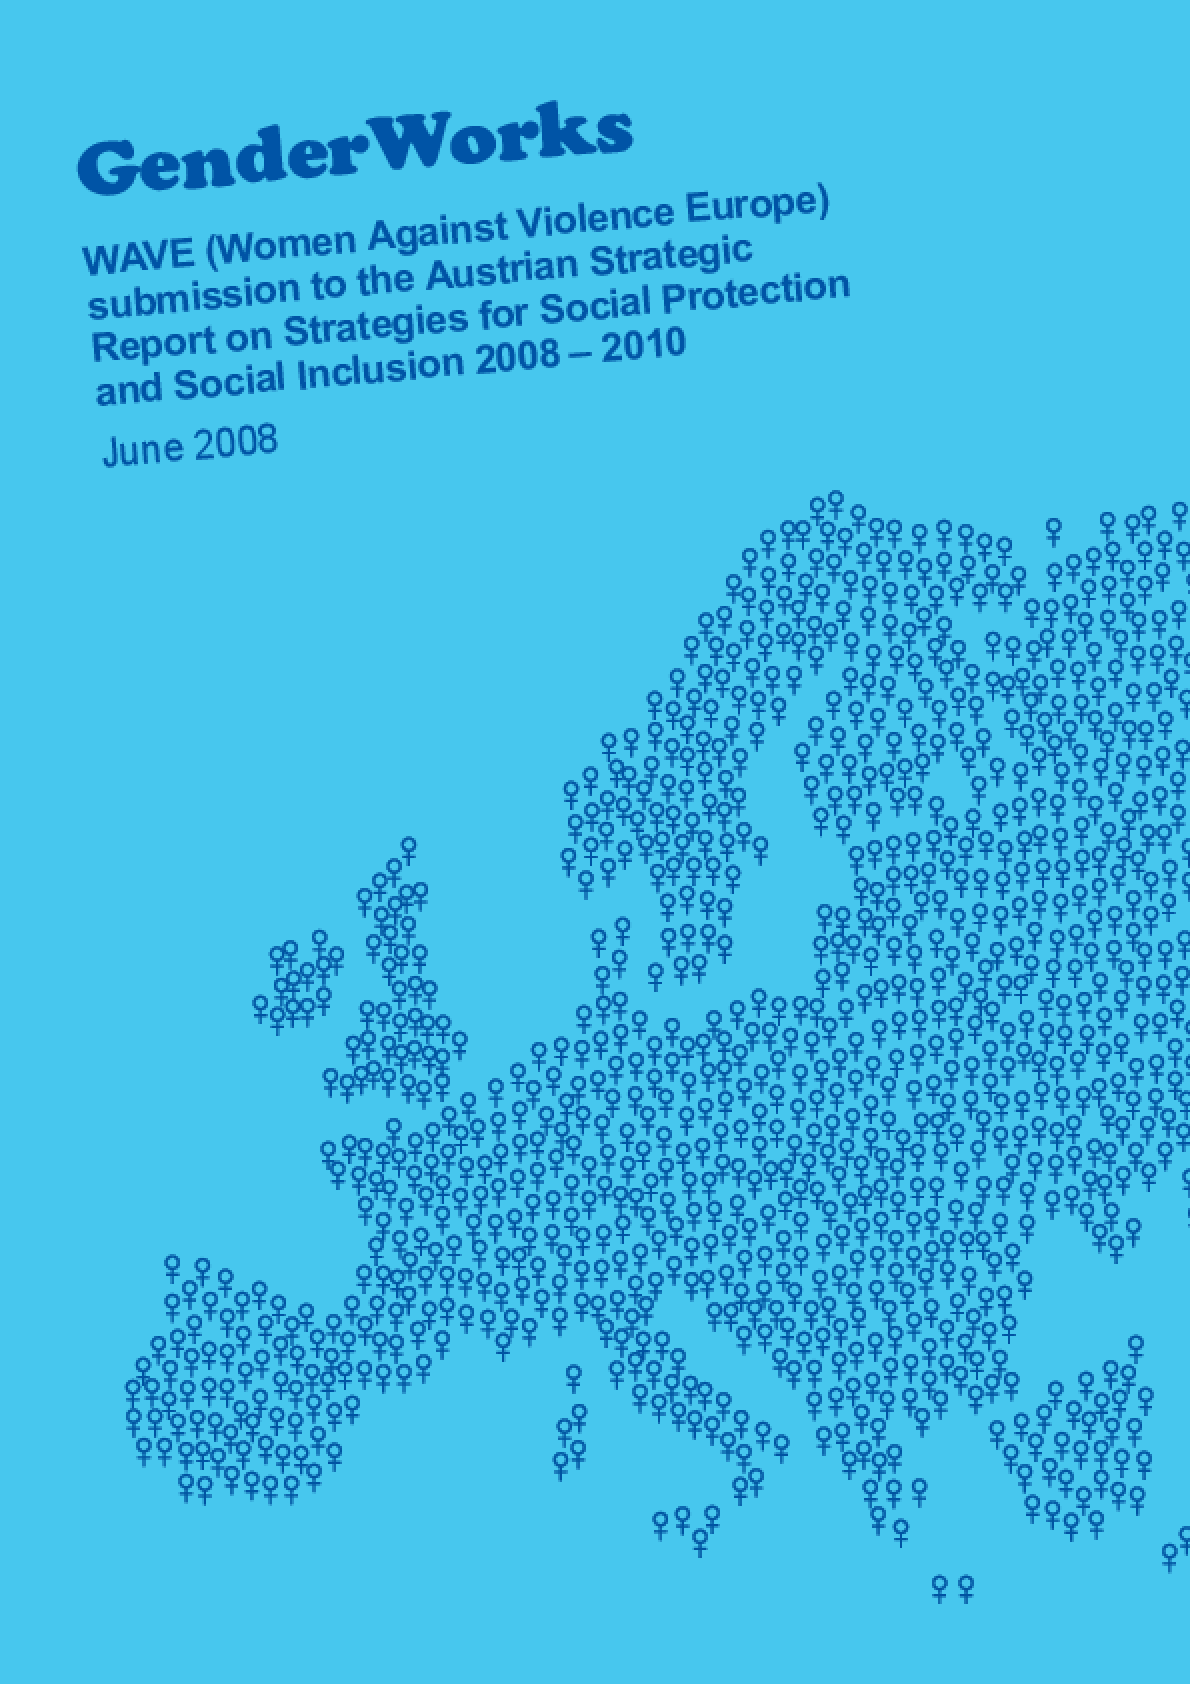 WAVE Submission to the Austrian Strategic Report on Strategies for Social Protection and Social Inclusion 2008 - 2010